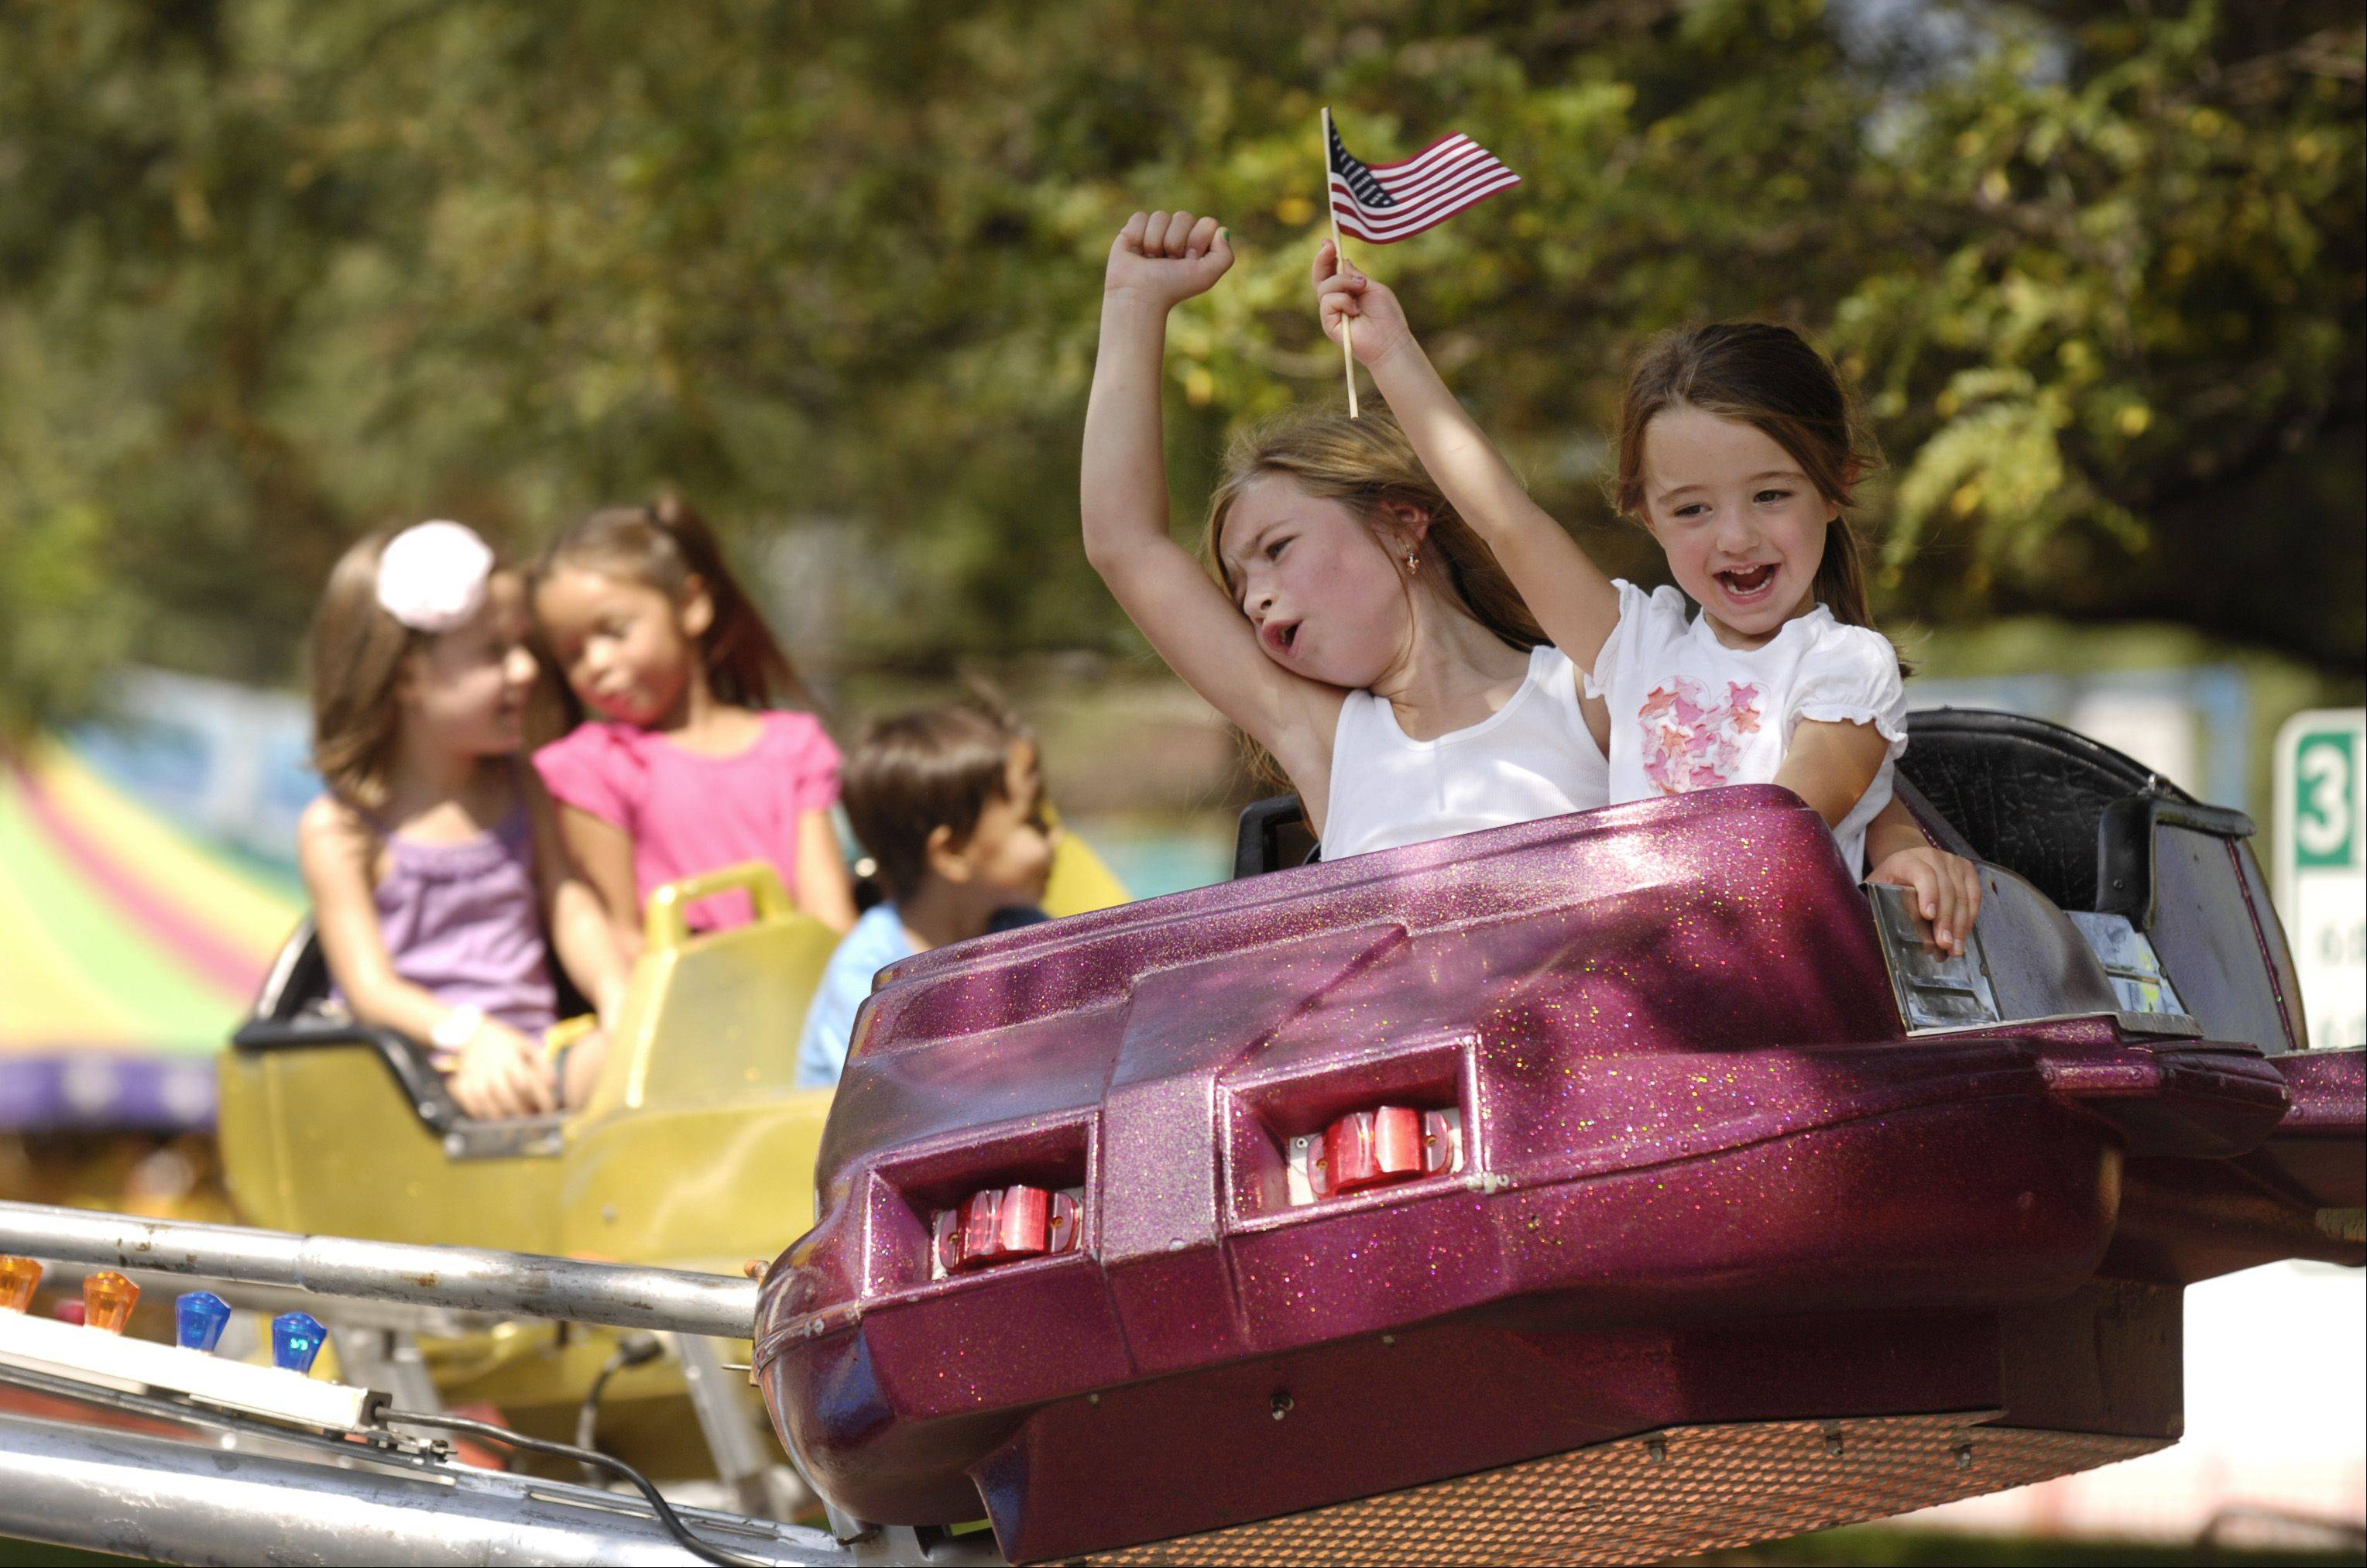 Peyton and Lexi Gilchrist of Naperville enjoy a ride at the annual Naperville Last Fling festival, Monday.